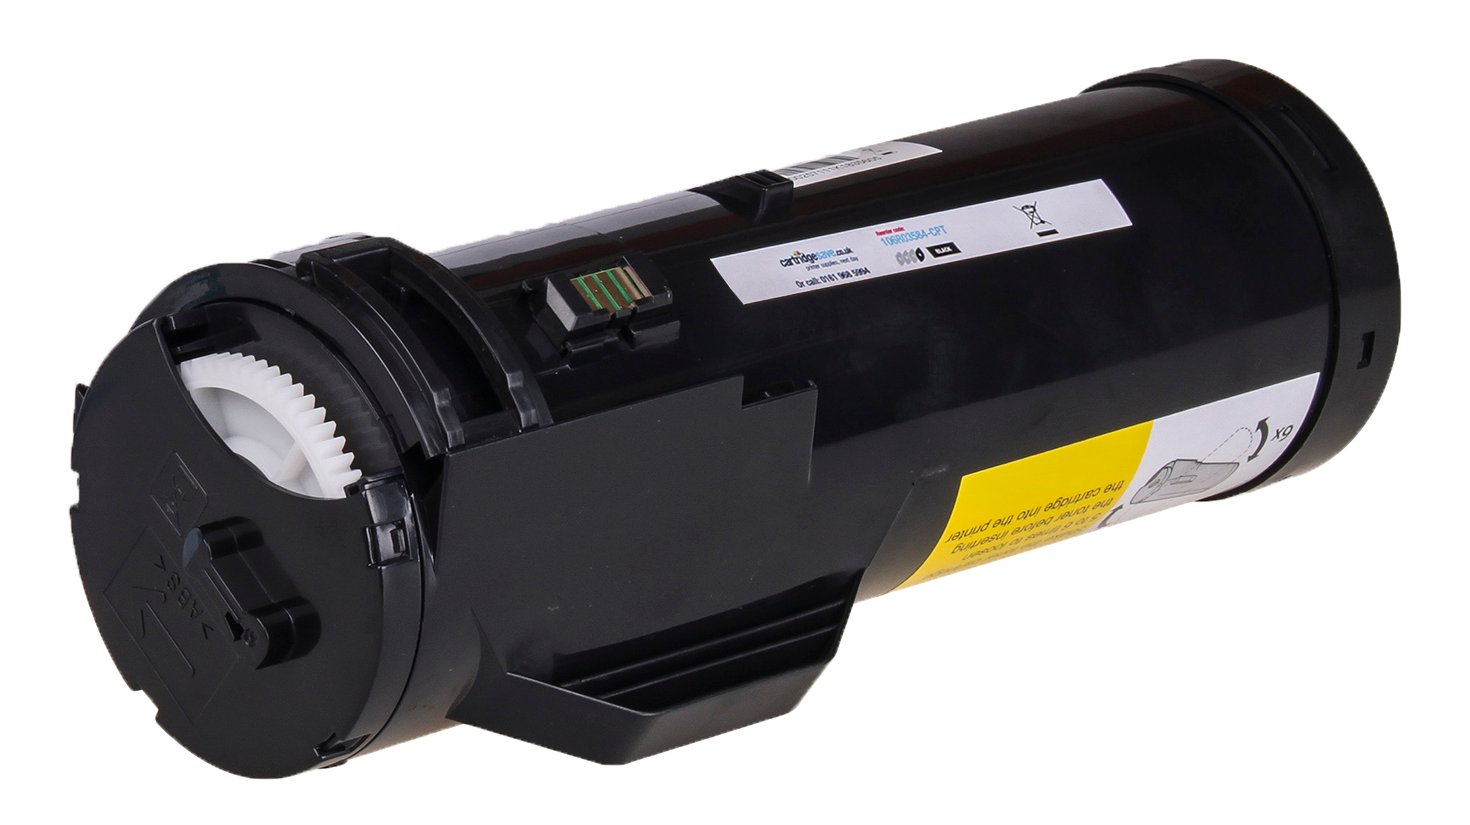 Compatible Xerox 106R03584 Black Extra High Capacity Toner Cartridge (Replaces Xerox 106R03584 Laser Printer Cartridge)